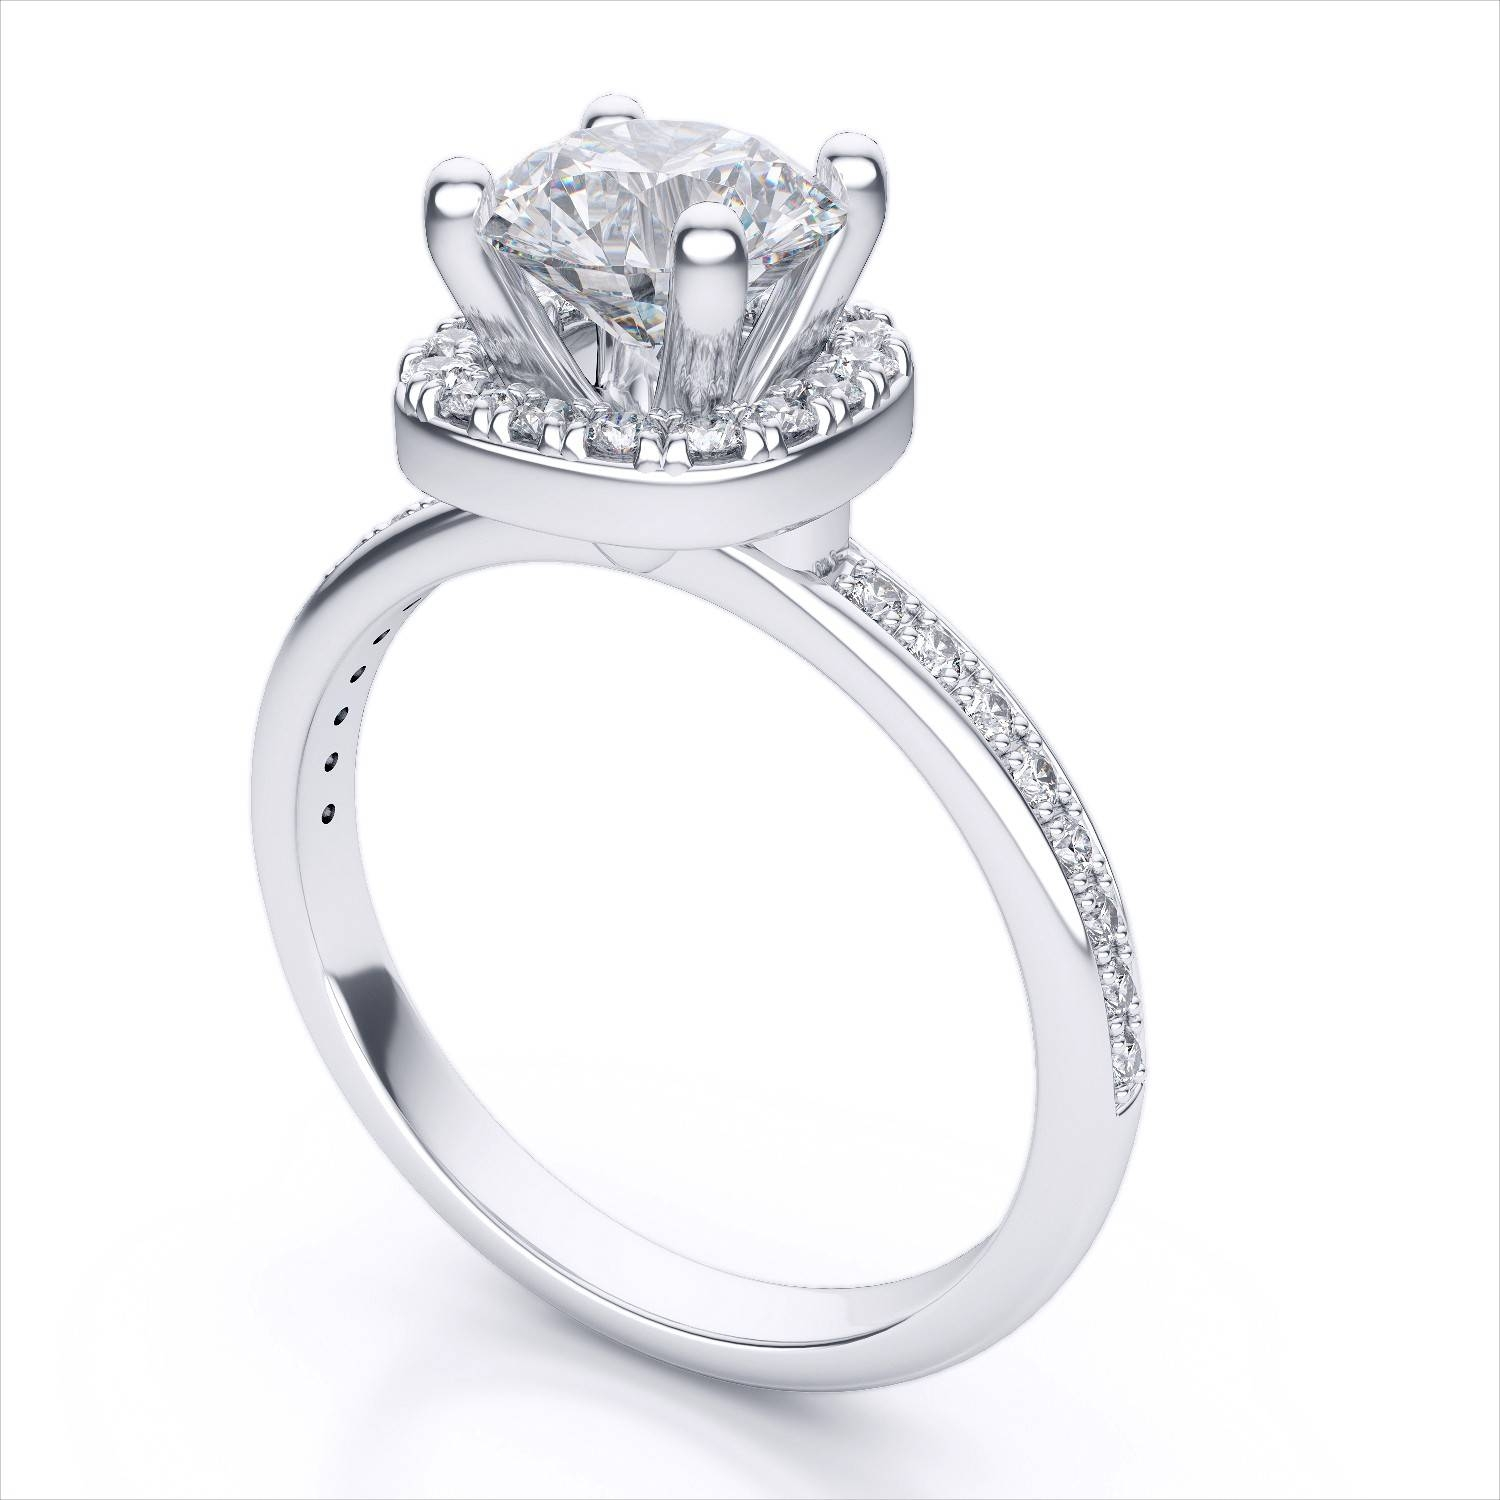 stones marquise side diamond jewellery myshoplah settings ring with